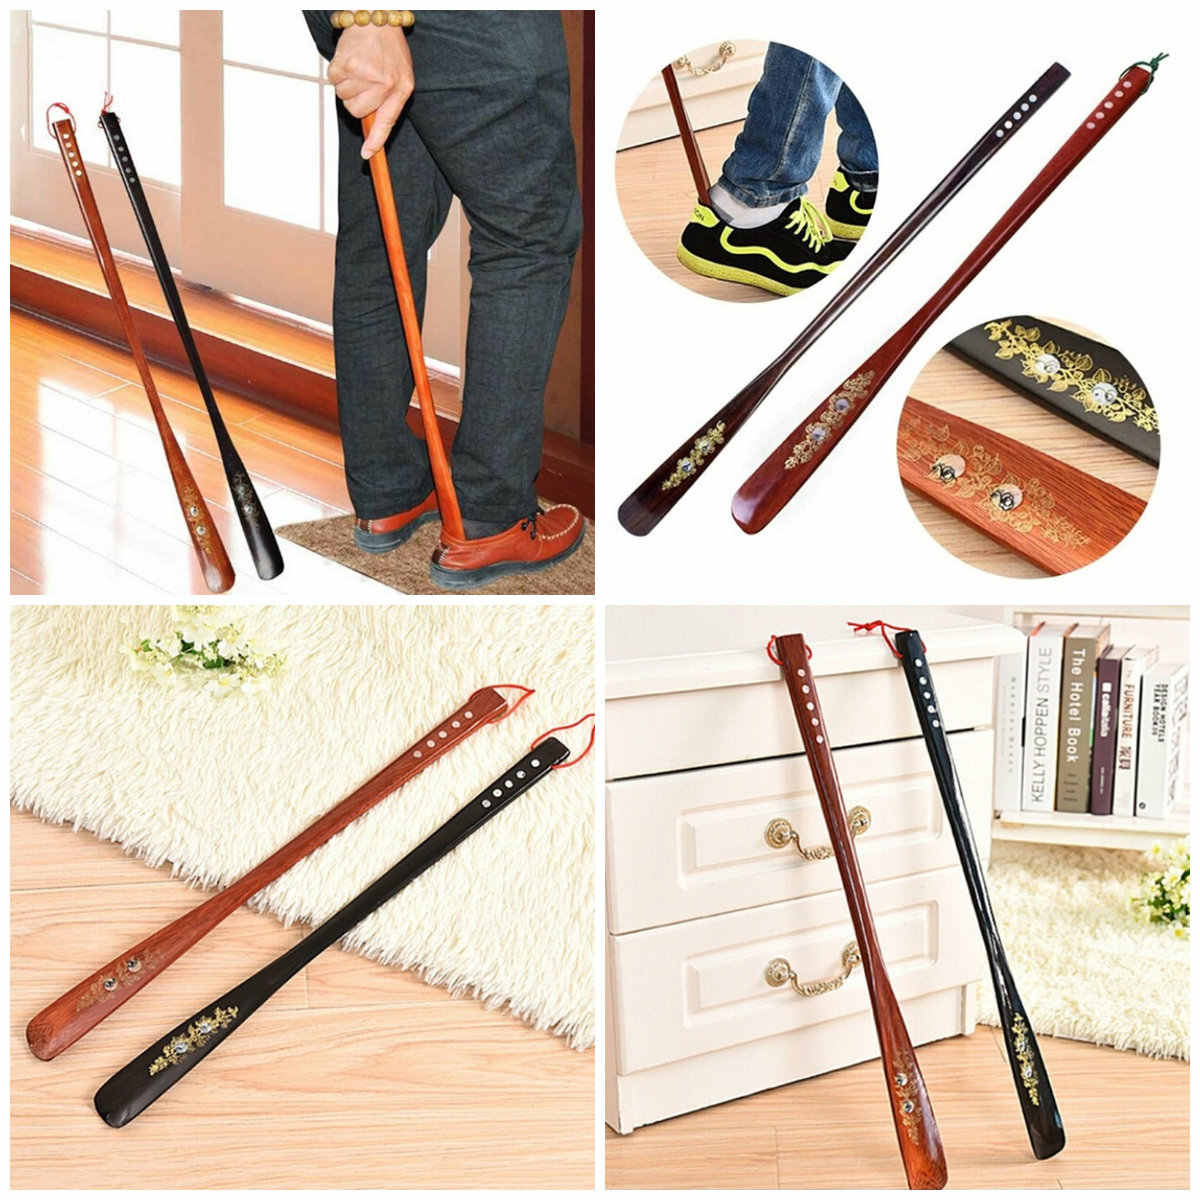 Wooden Long Handle Shoe Horn Lifter Shoehorn New Arrival 55 Cm Ultra Long Mahogany Craft Wenge Wooden Shoe Horn Professional